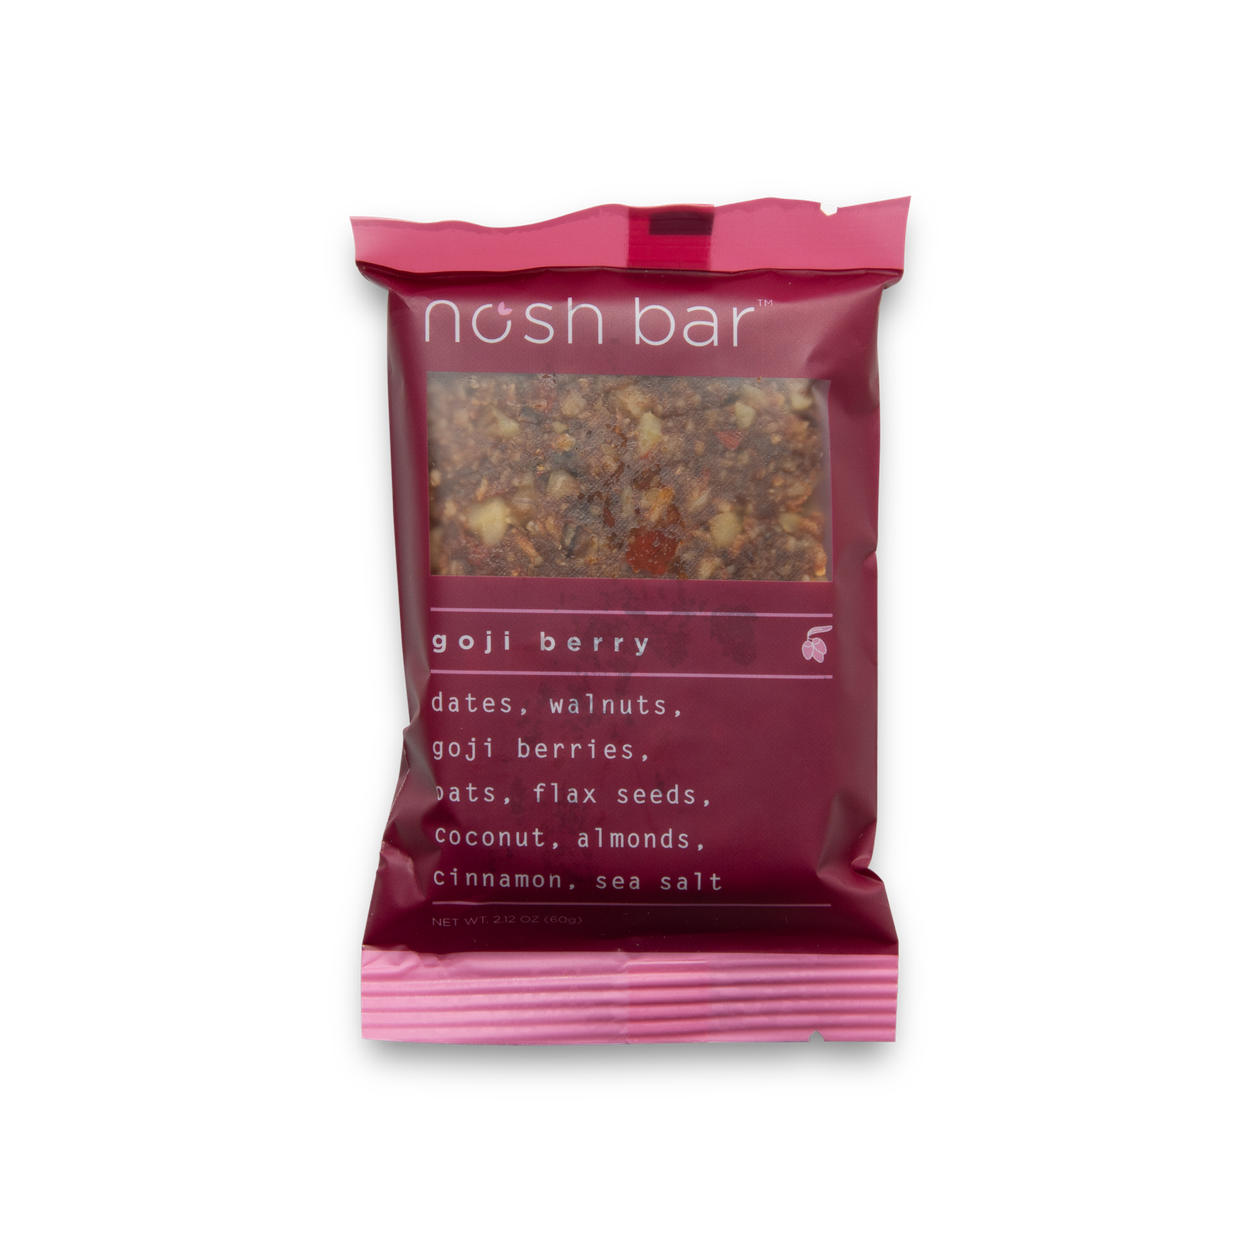 nosh bar - goji berry